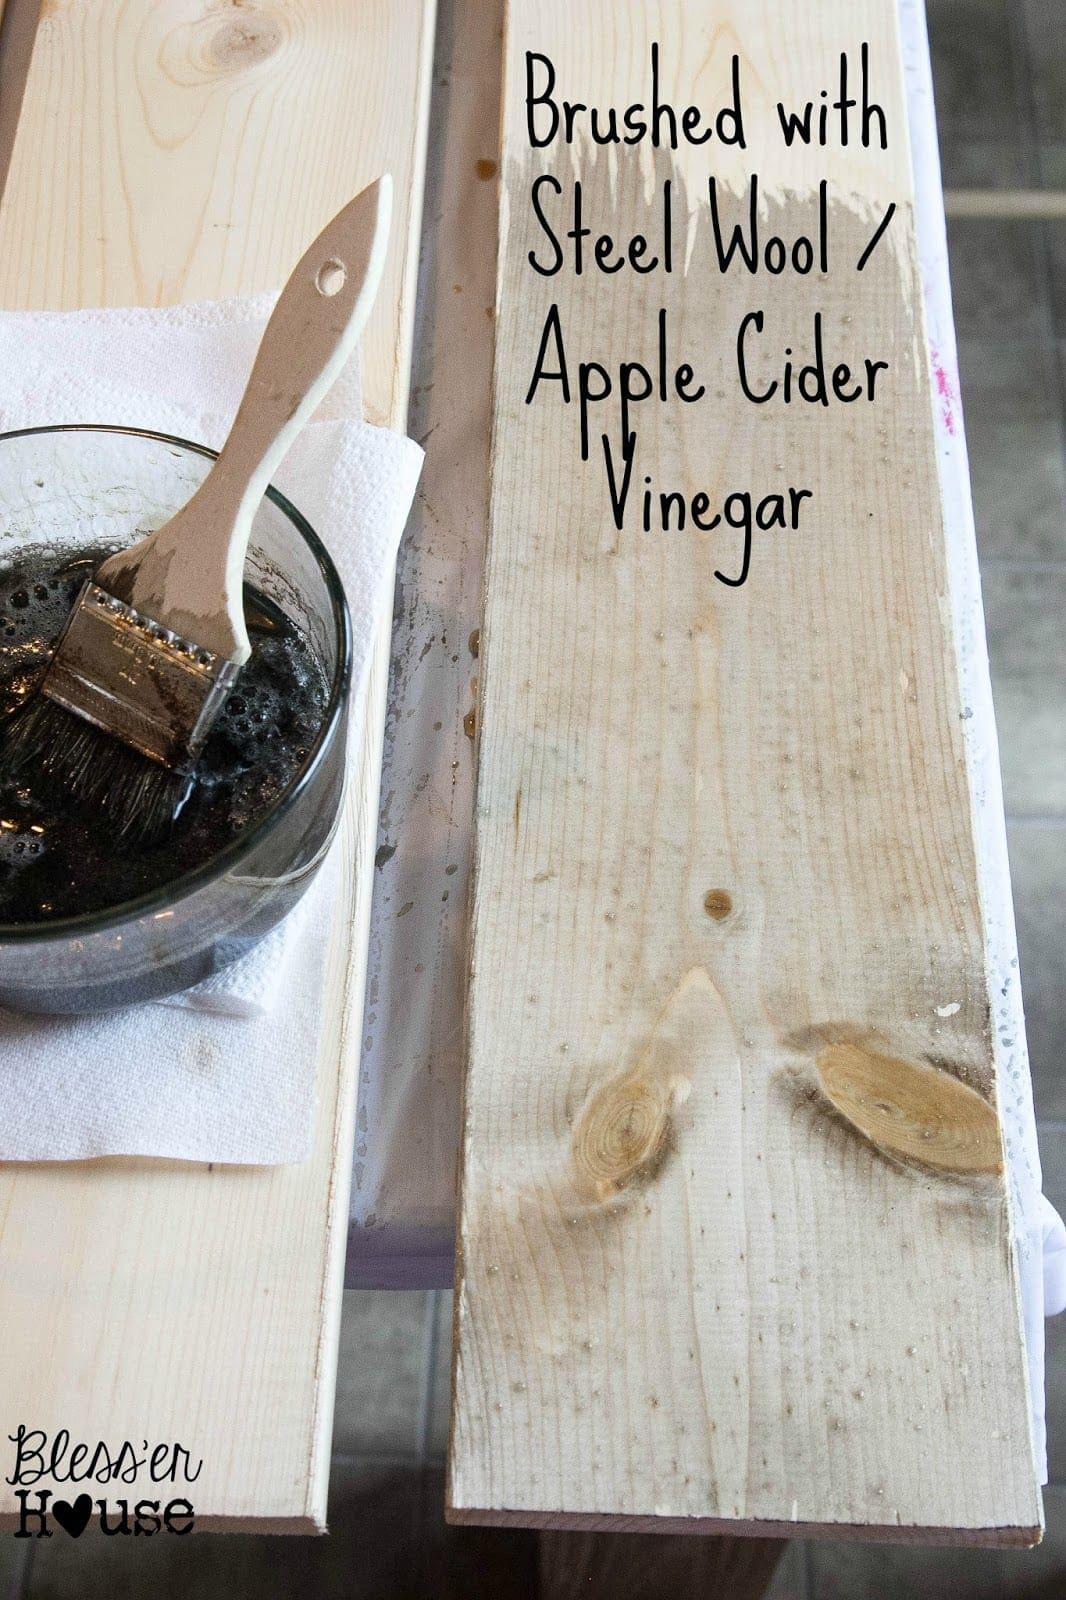 The next step in this all natural wood stain method is to brush the tea stained lumber with the steel wool and apple cider vinegar stain.